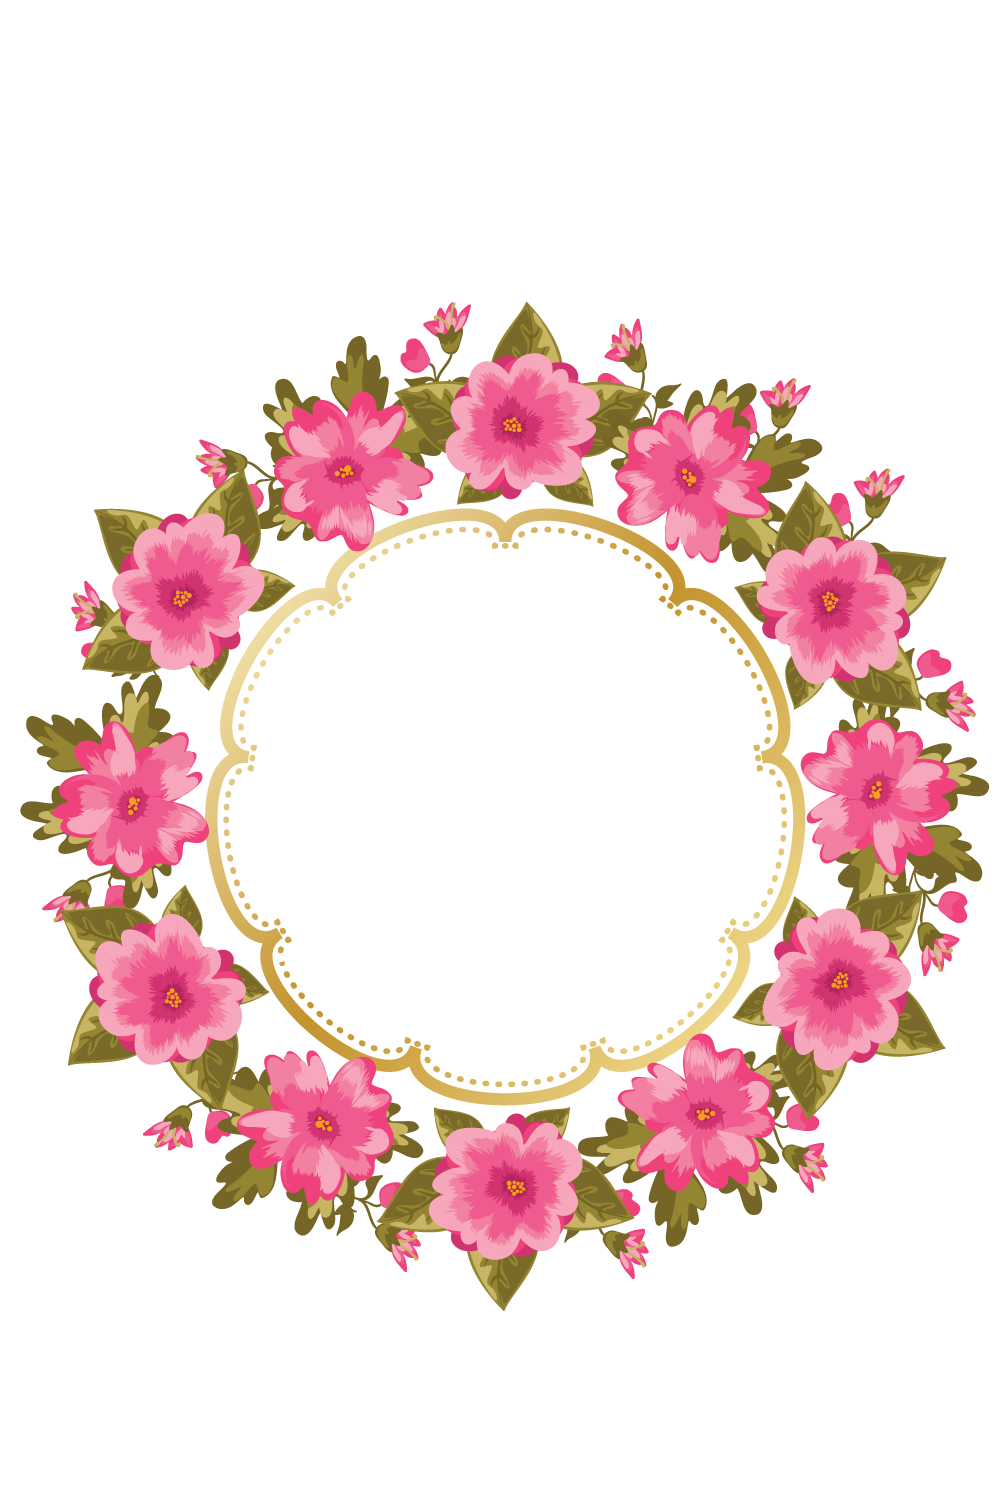 Http e top net. Flower wreath clipart